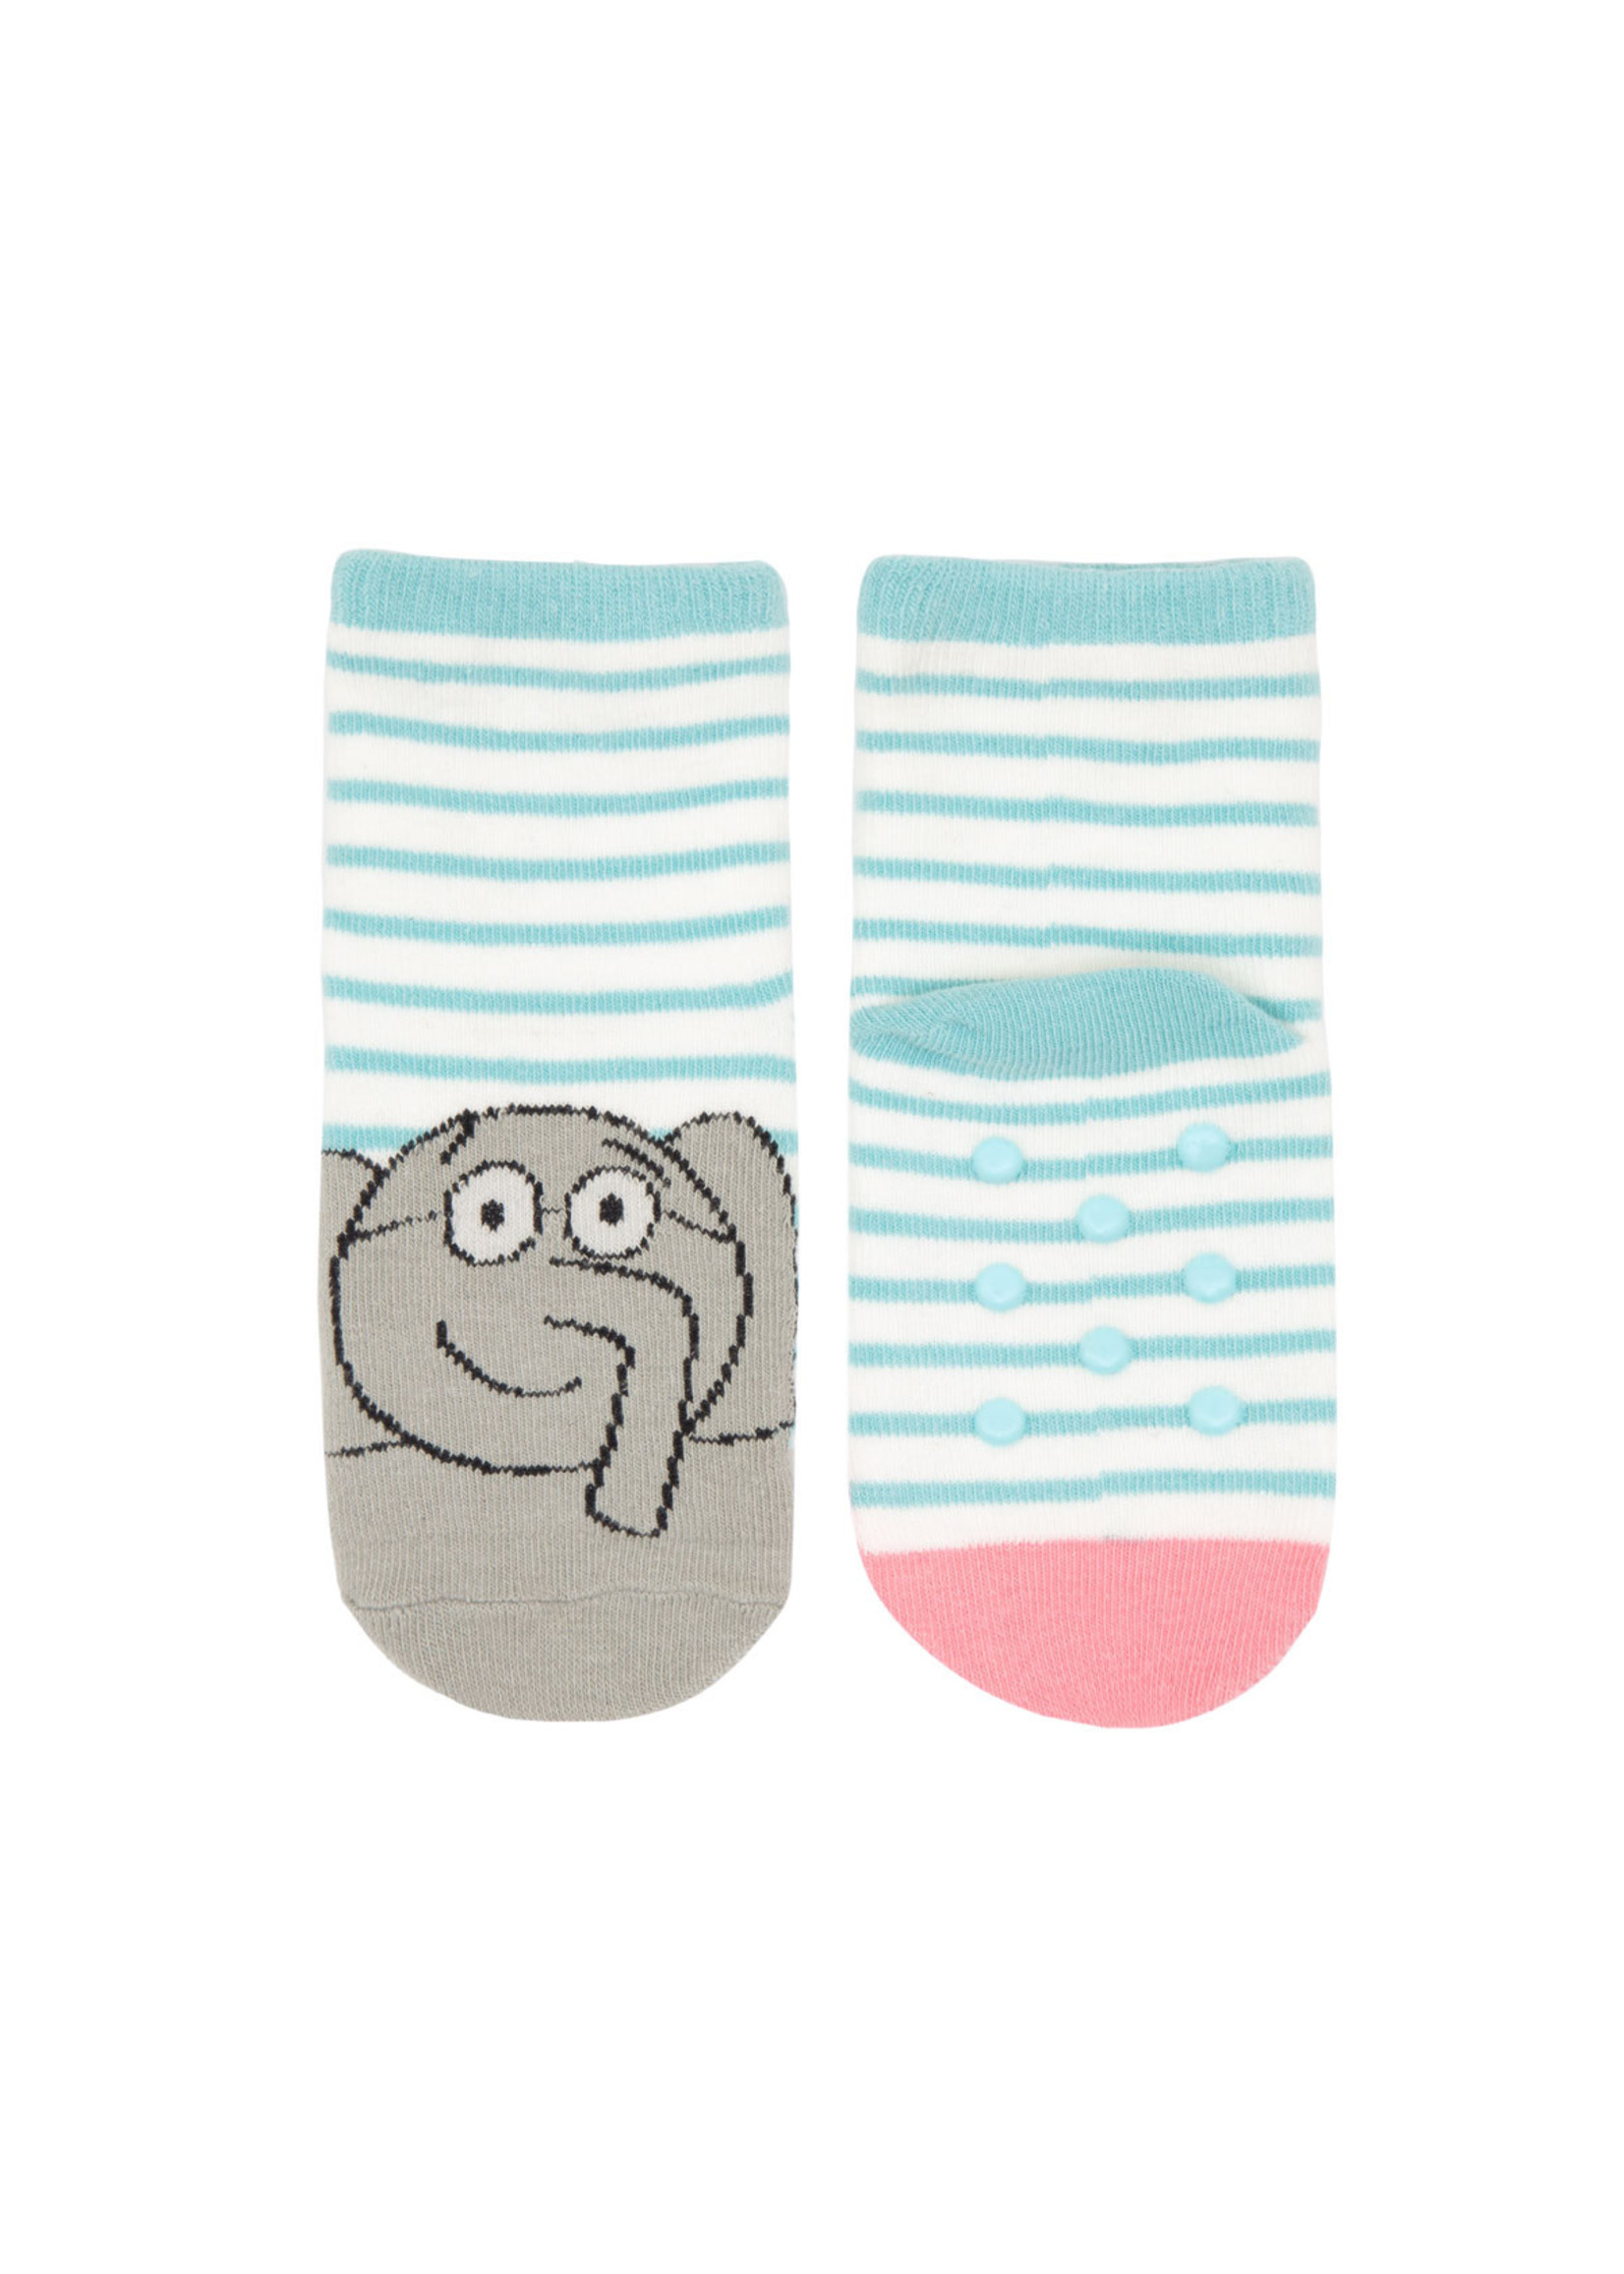 Out of Print Mo Willems Socks - Kids, Pack of 4